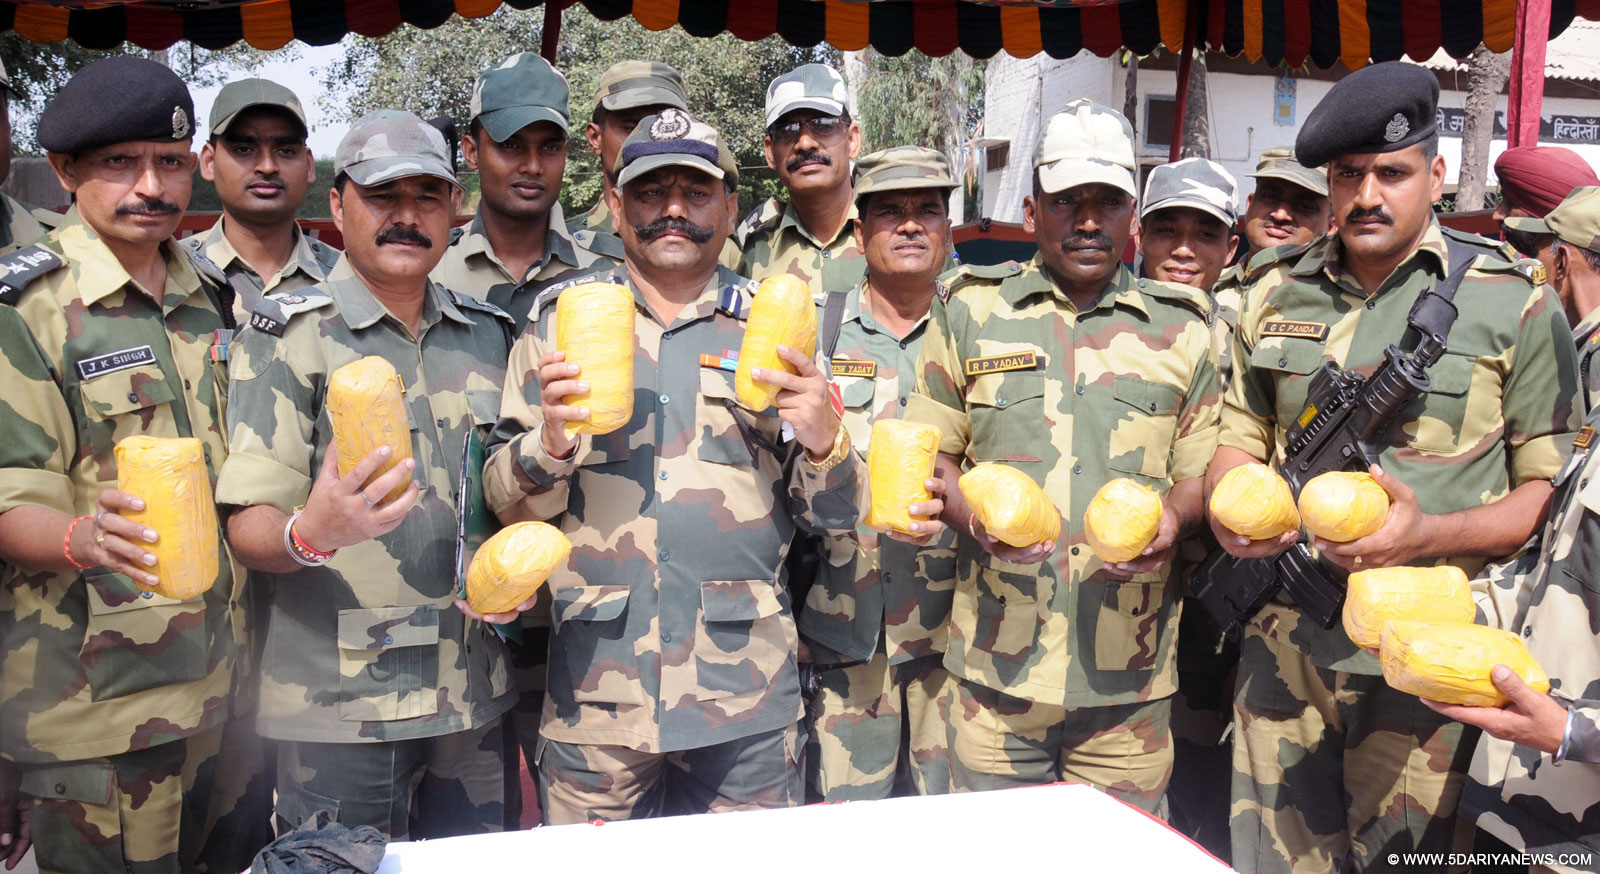 Amritsar: BSF soldiers present before press 14 kg heroin valued at Rs 70 crore in the international market that was recovered near Border Out Post Chanmulla about 40 Km from Amritsar, on Oct 17, 2015.